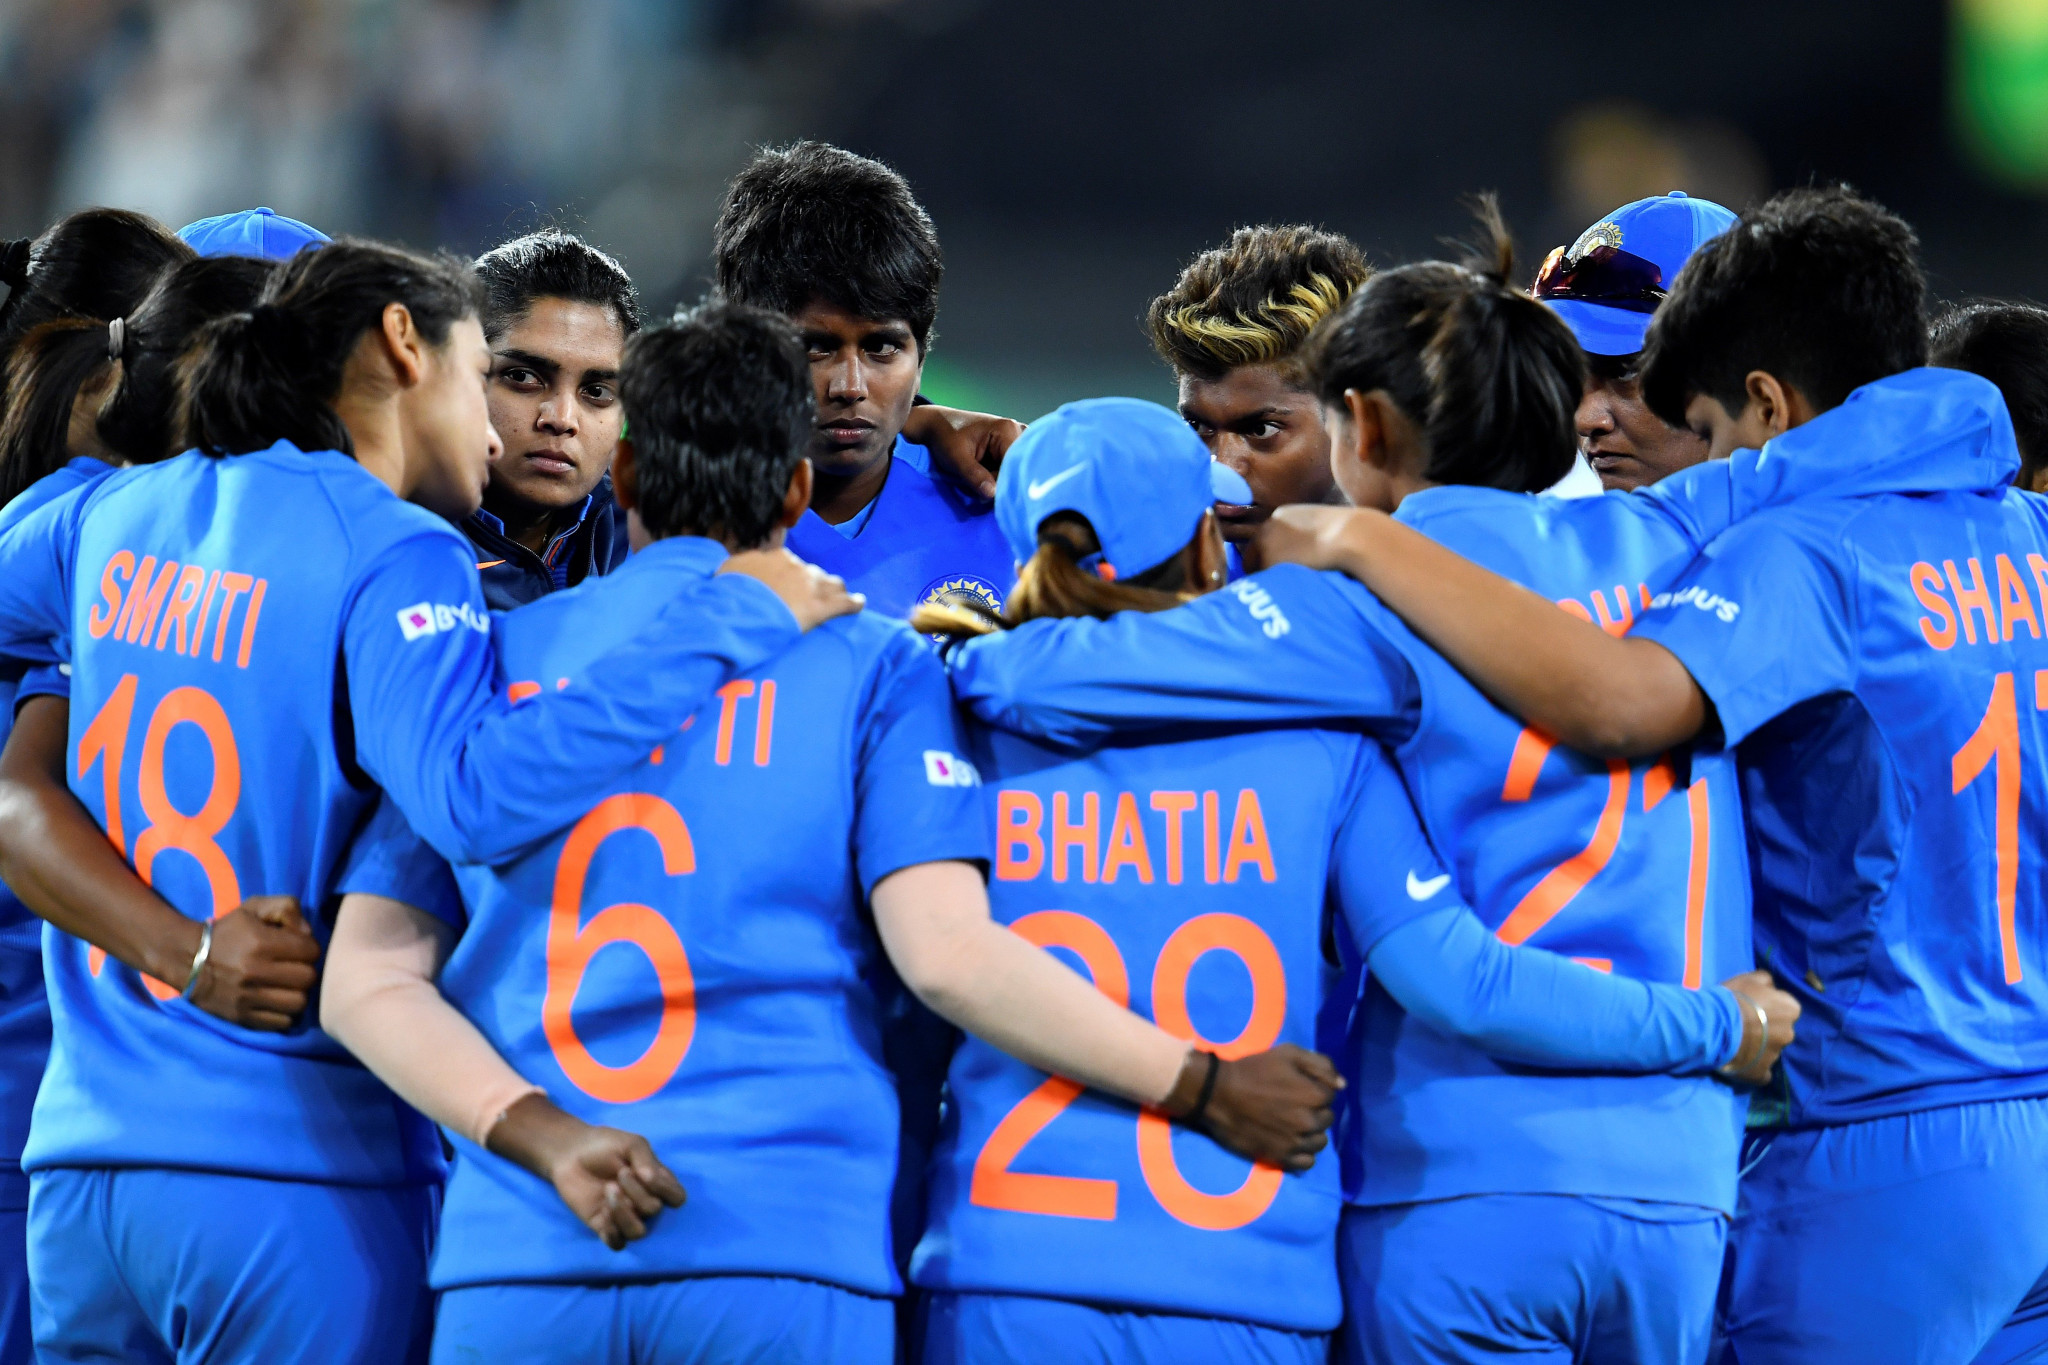 A BCCI official told an Indian newspaper that the country's men's and women's cricket teams would receive a boost if the sport is included at the Los Angeles 2028 Olympics ©Getty Images